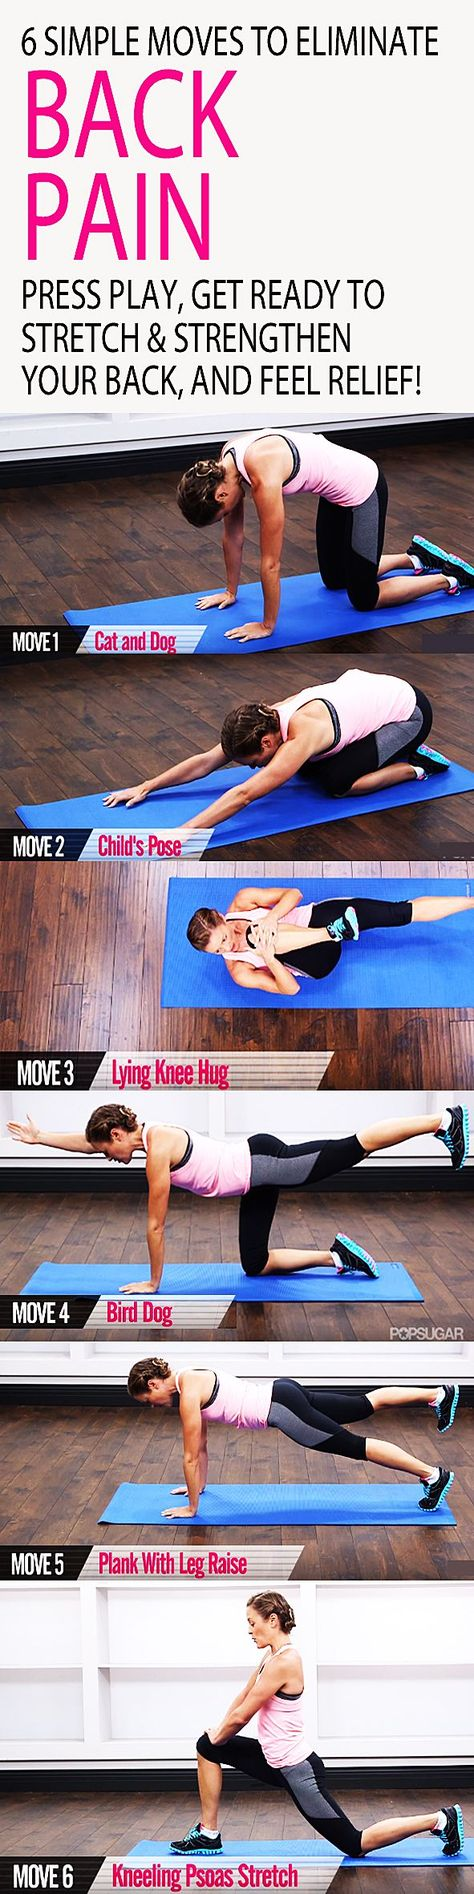 Don't let back pain keep you down! Here are six exercises that will keep your spine healthy and your core strong. This five-minute workout will teach you the essentials for maintaining a better back, from flexible hips to strong abs. Press play, get ready to stretch and strengthen your back, and feel RELIEF.